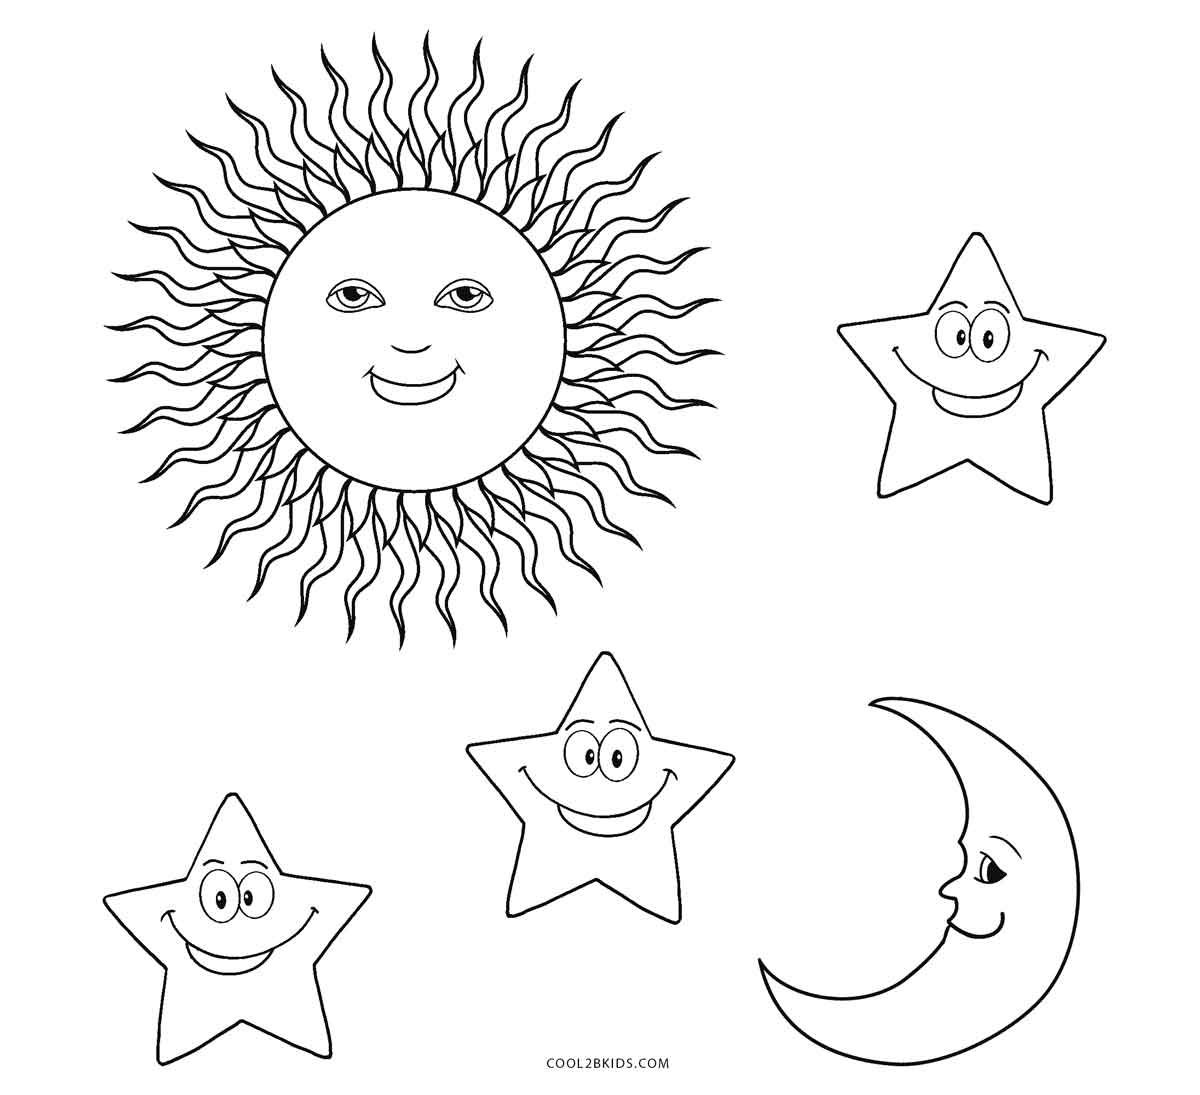 Coloring Pages Stars Sunnd Check More At S